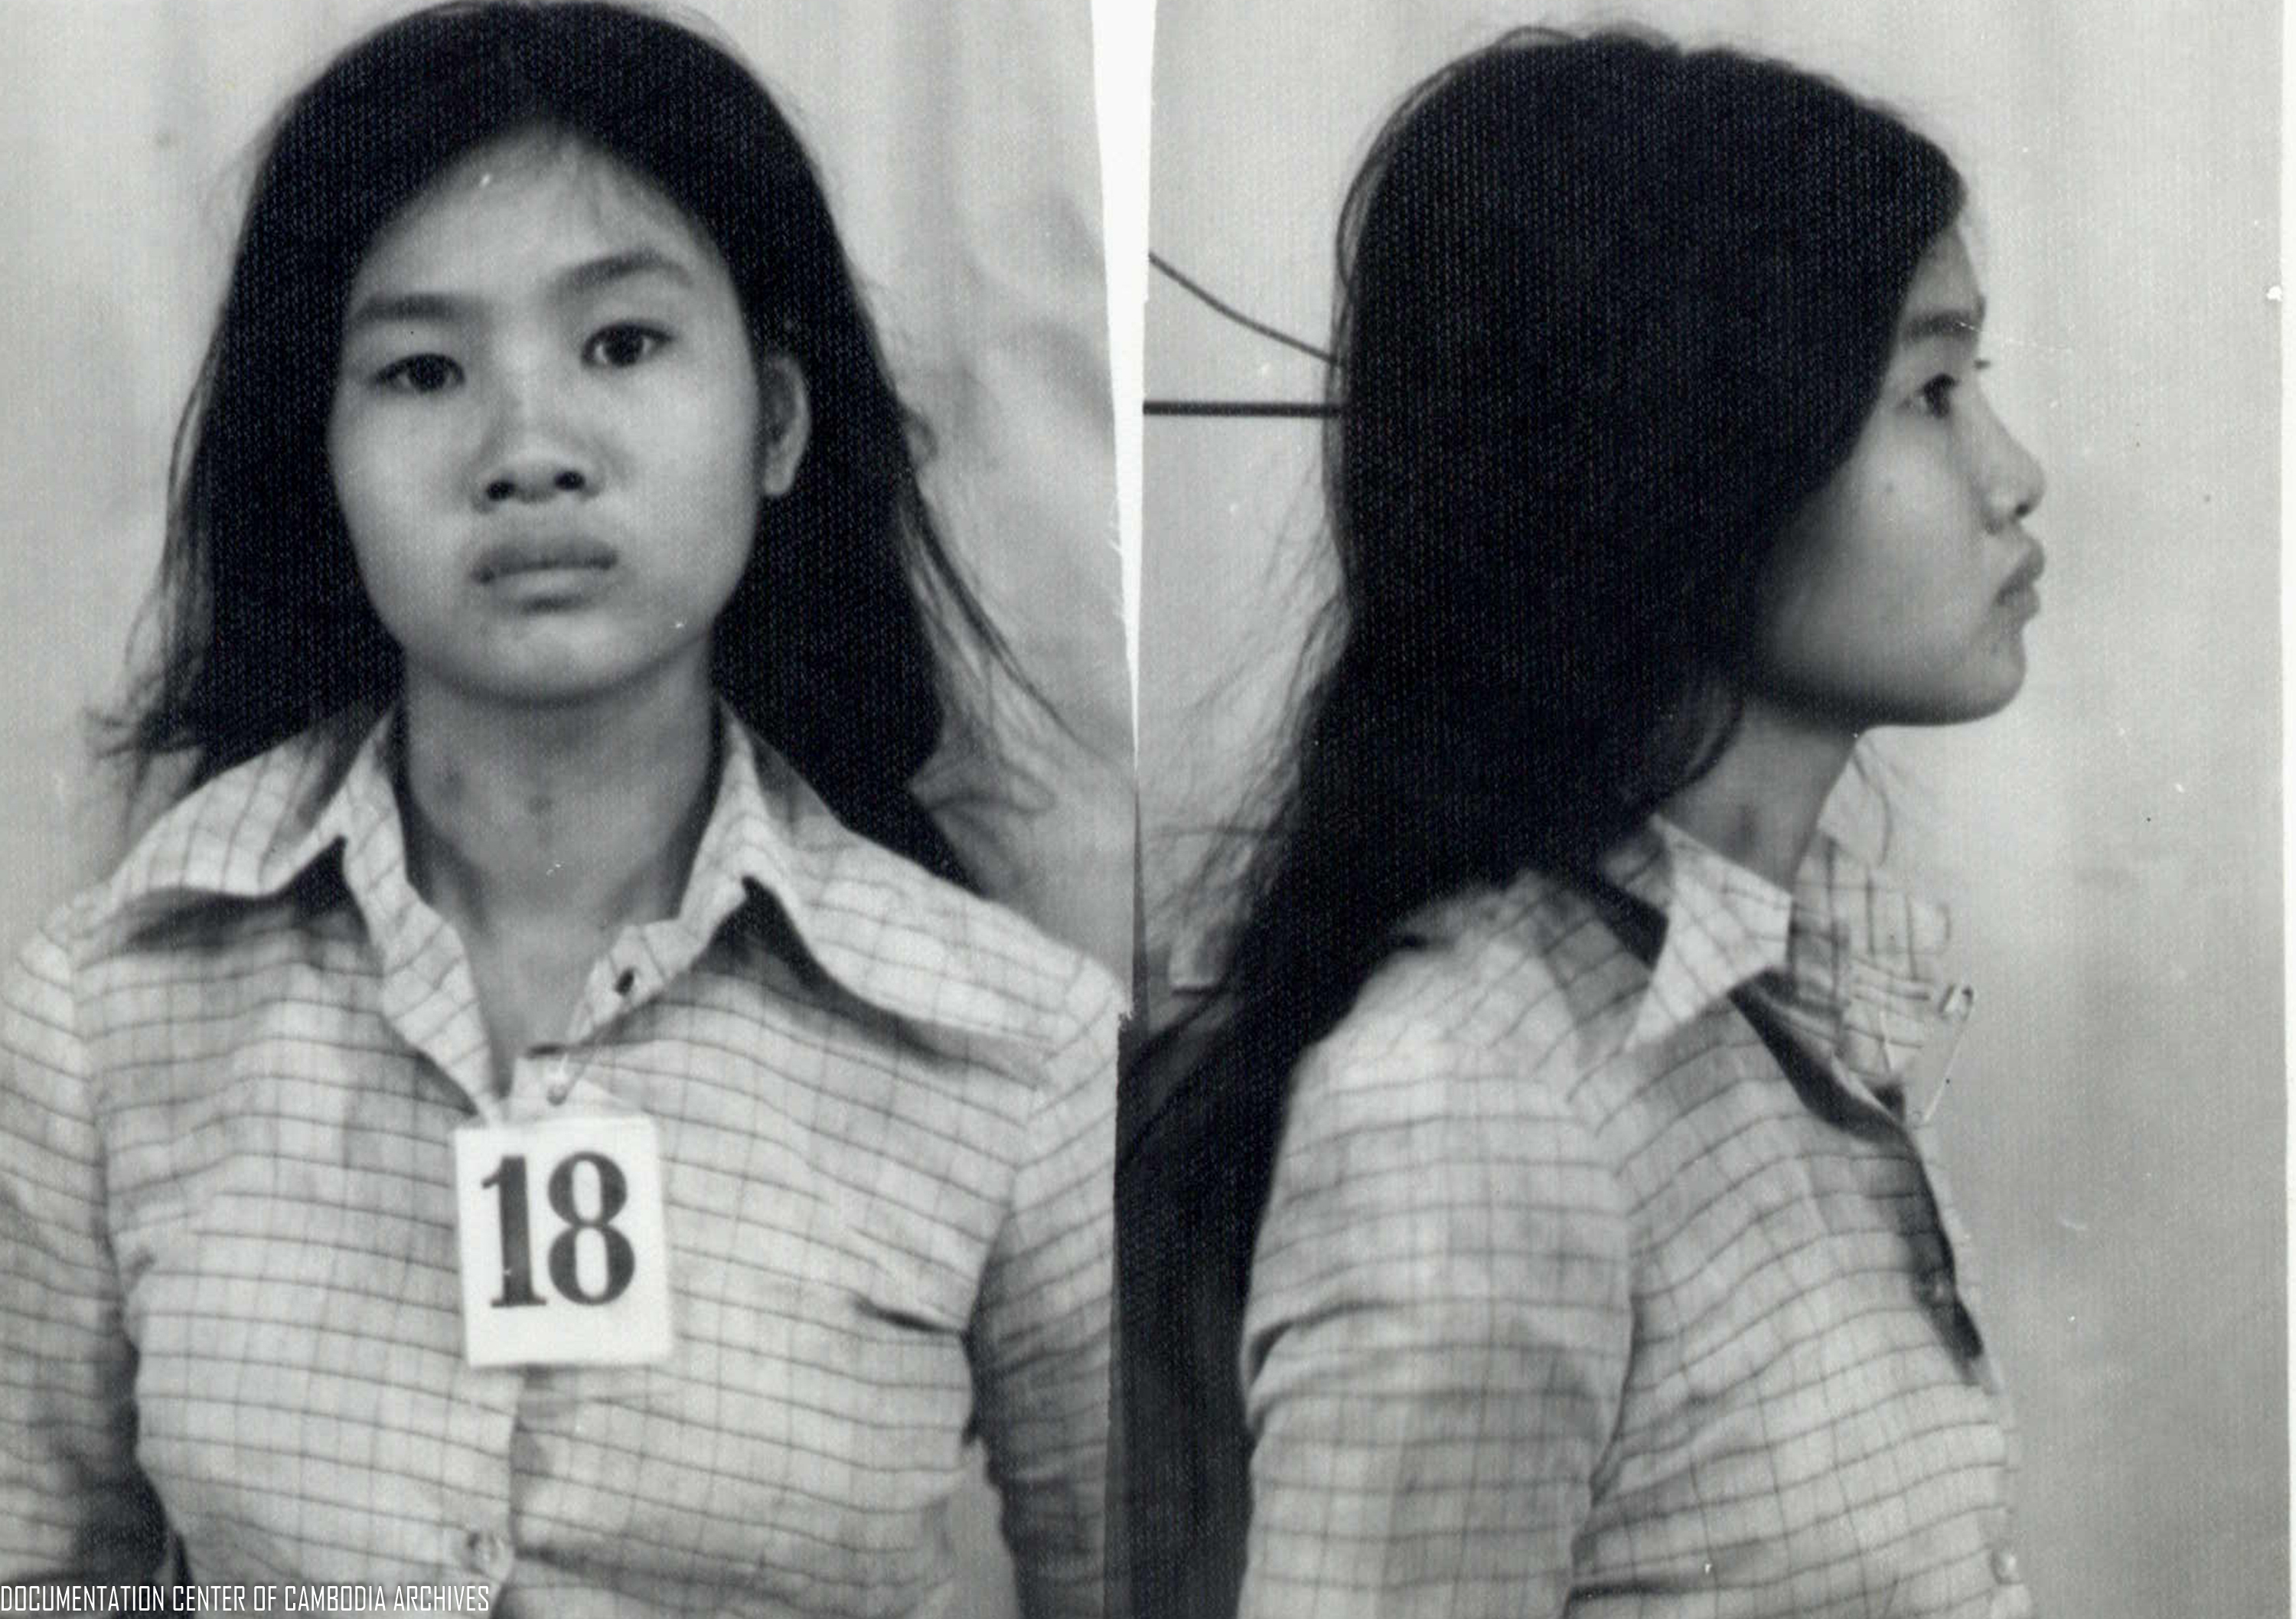 Vietnamese detainee from S-21 or Tuol Sleng prison.